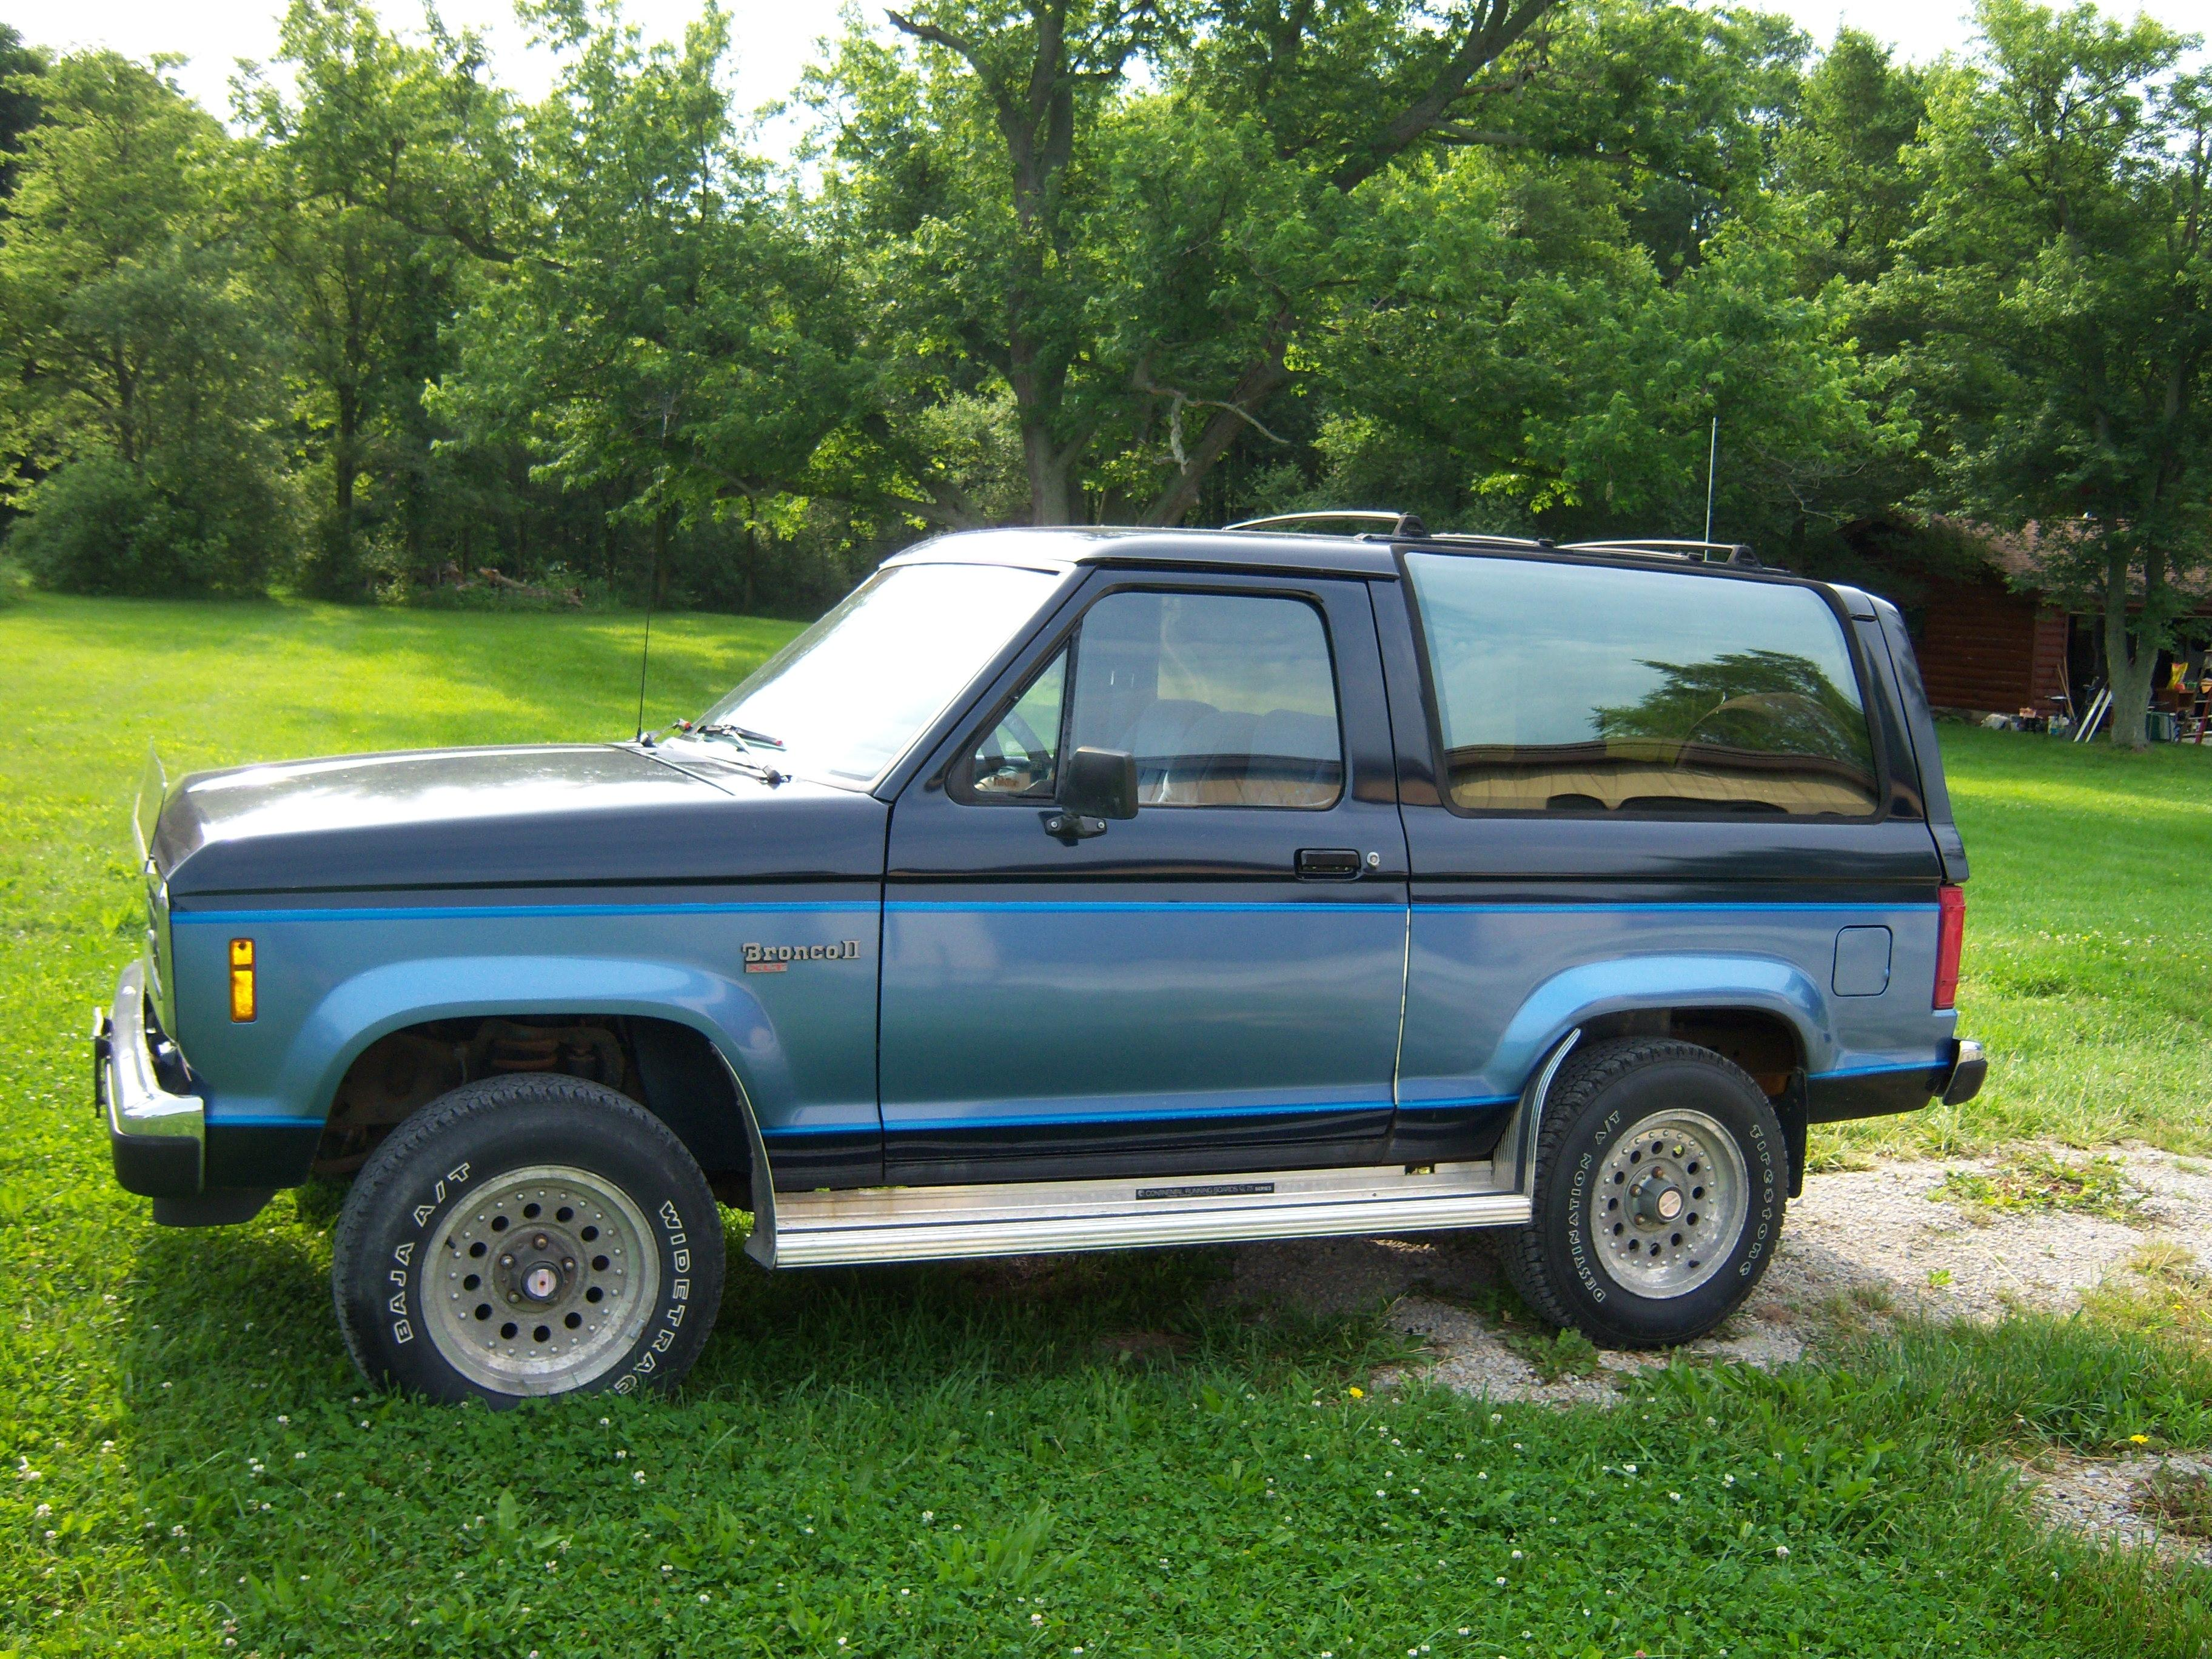 1988 ford bronco ii weight